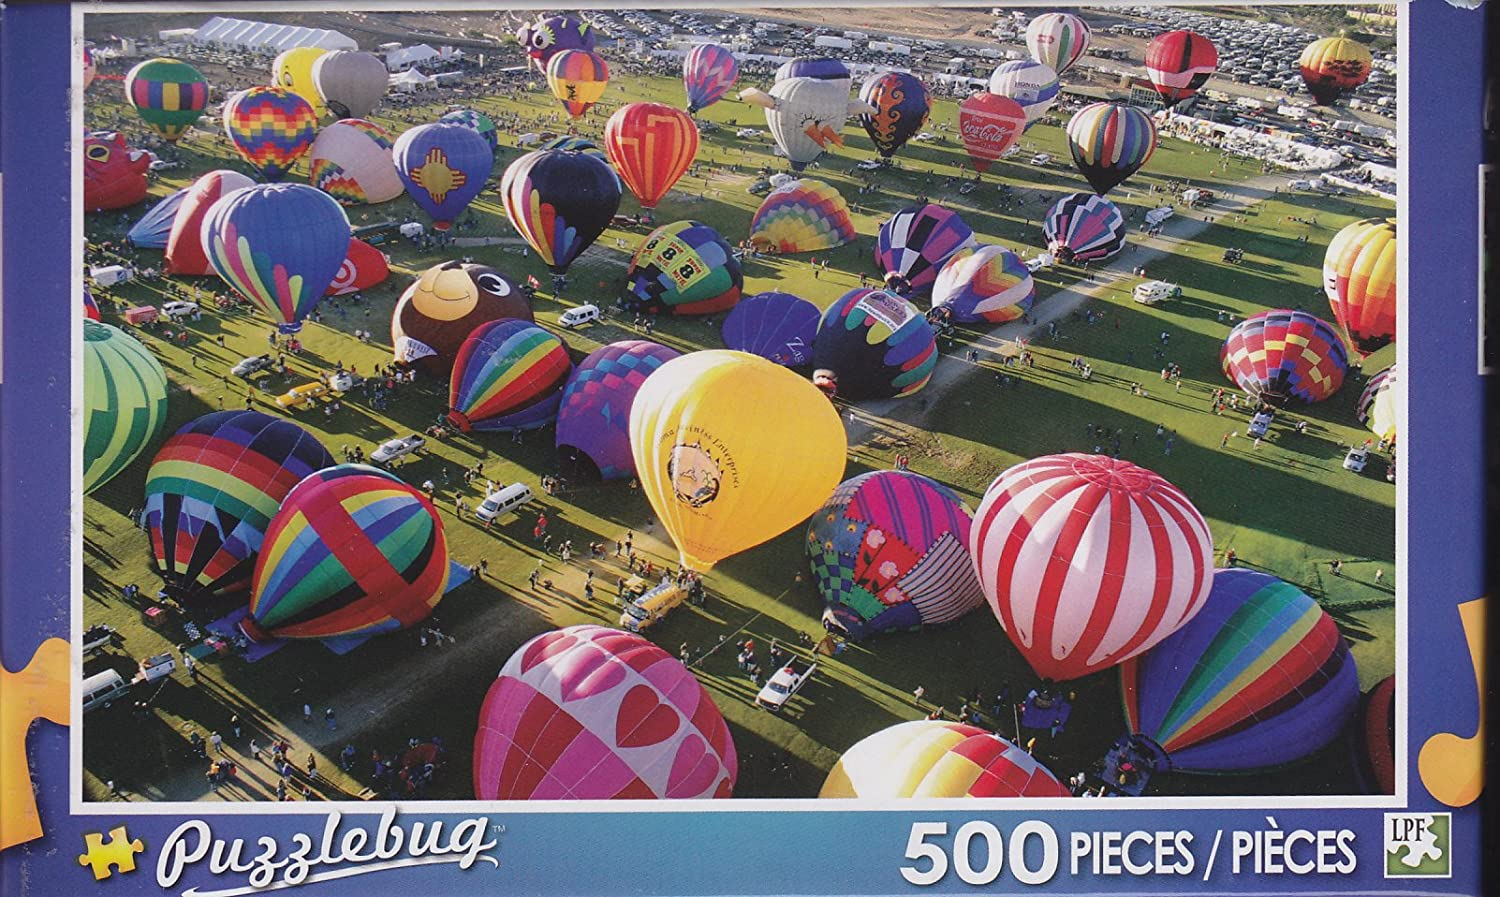 Puzzlebug 500 Piece Puzzle  Ready for Takeoff, Albuquerque Hot Air Balloon Festival by LPF